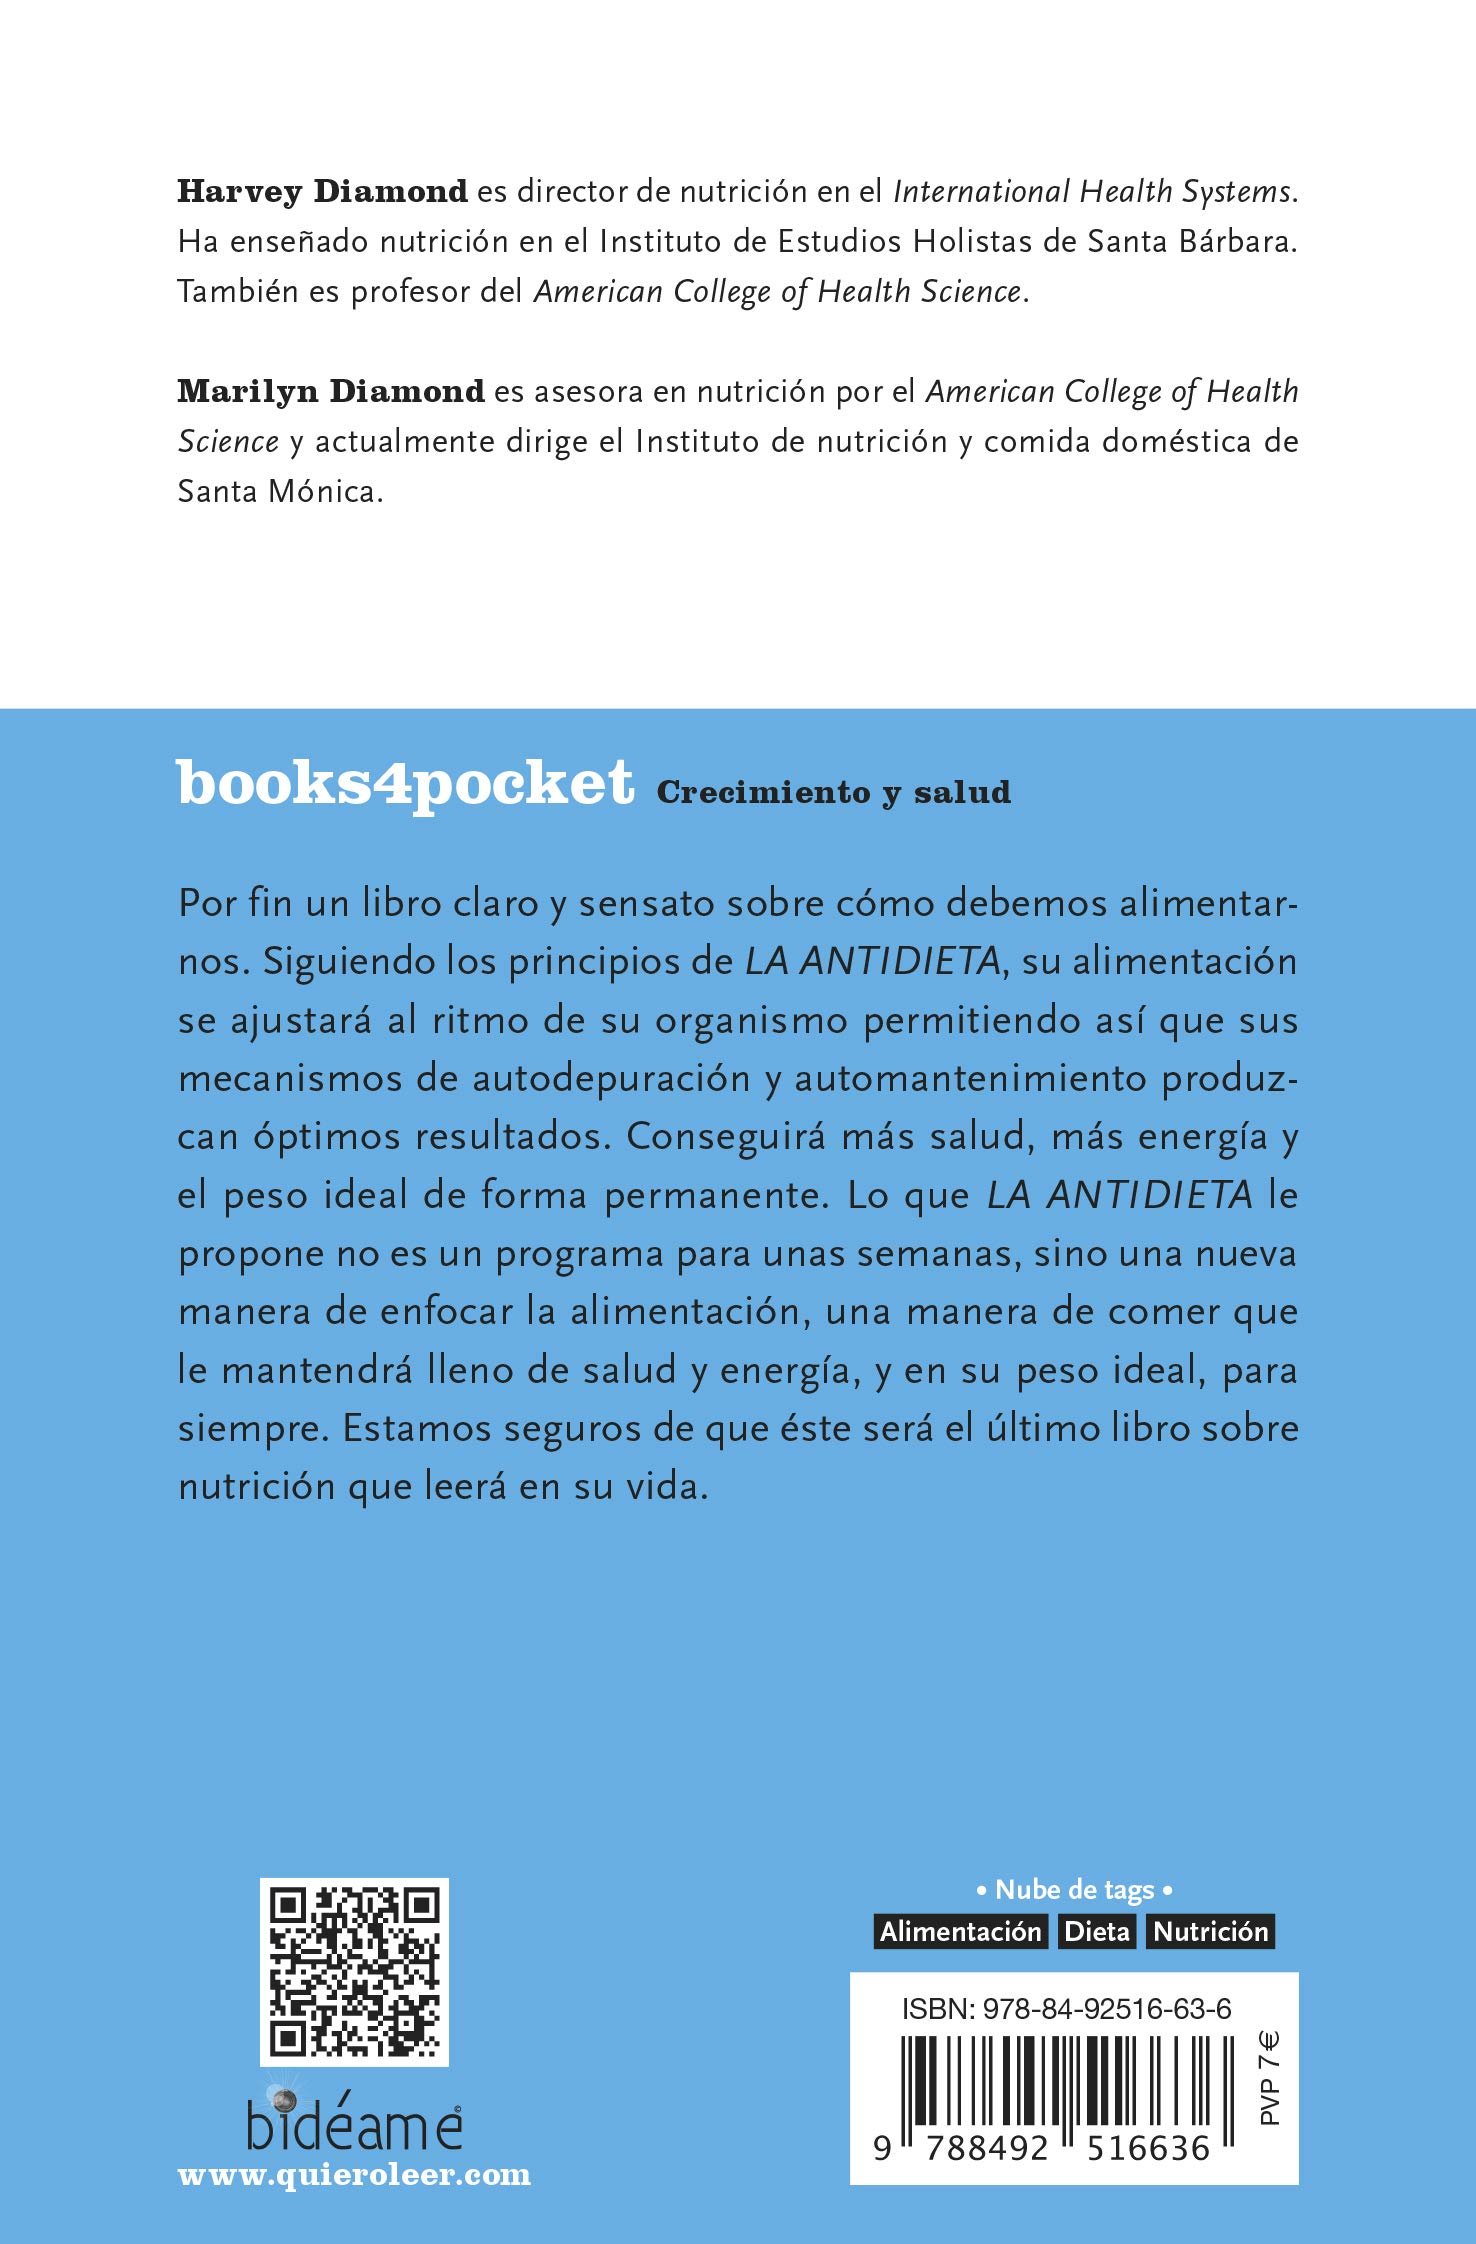 La antidieta (Books4pocket crec. y salud): Amazon.es: Harvey ...